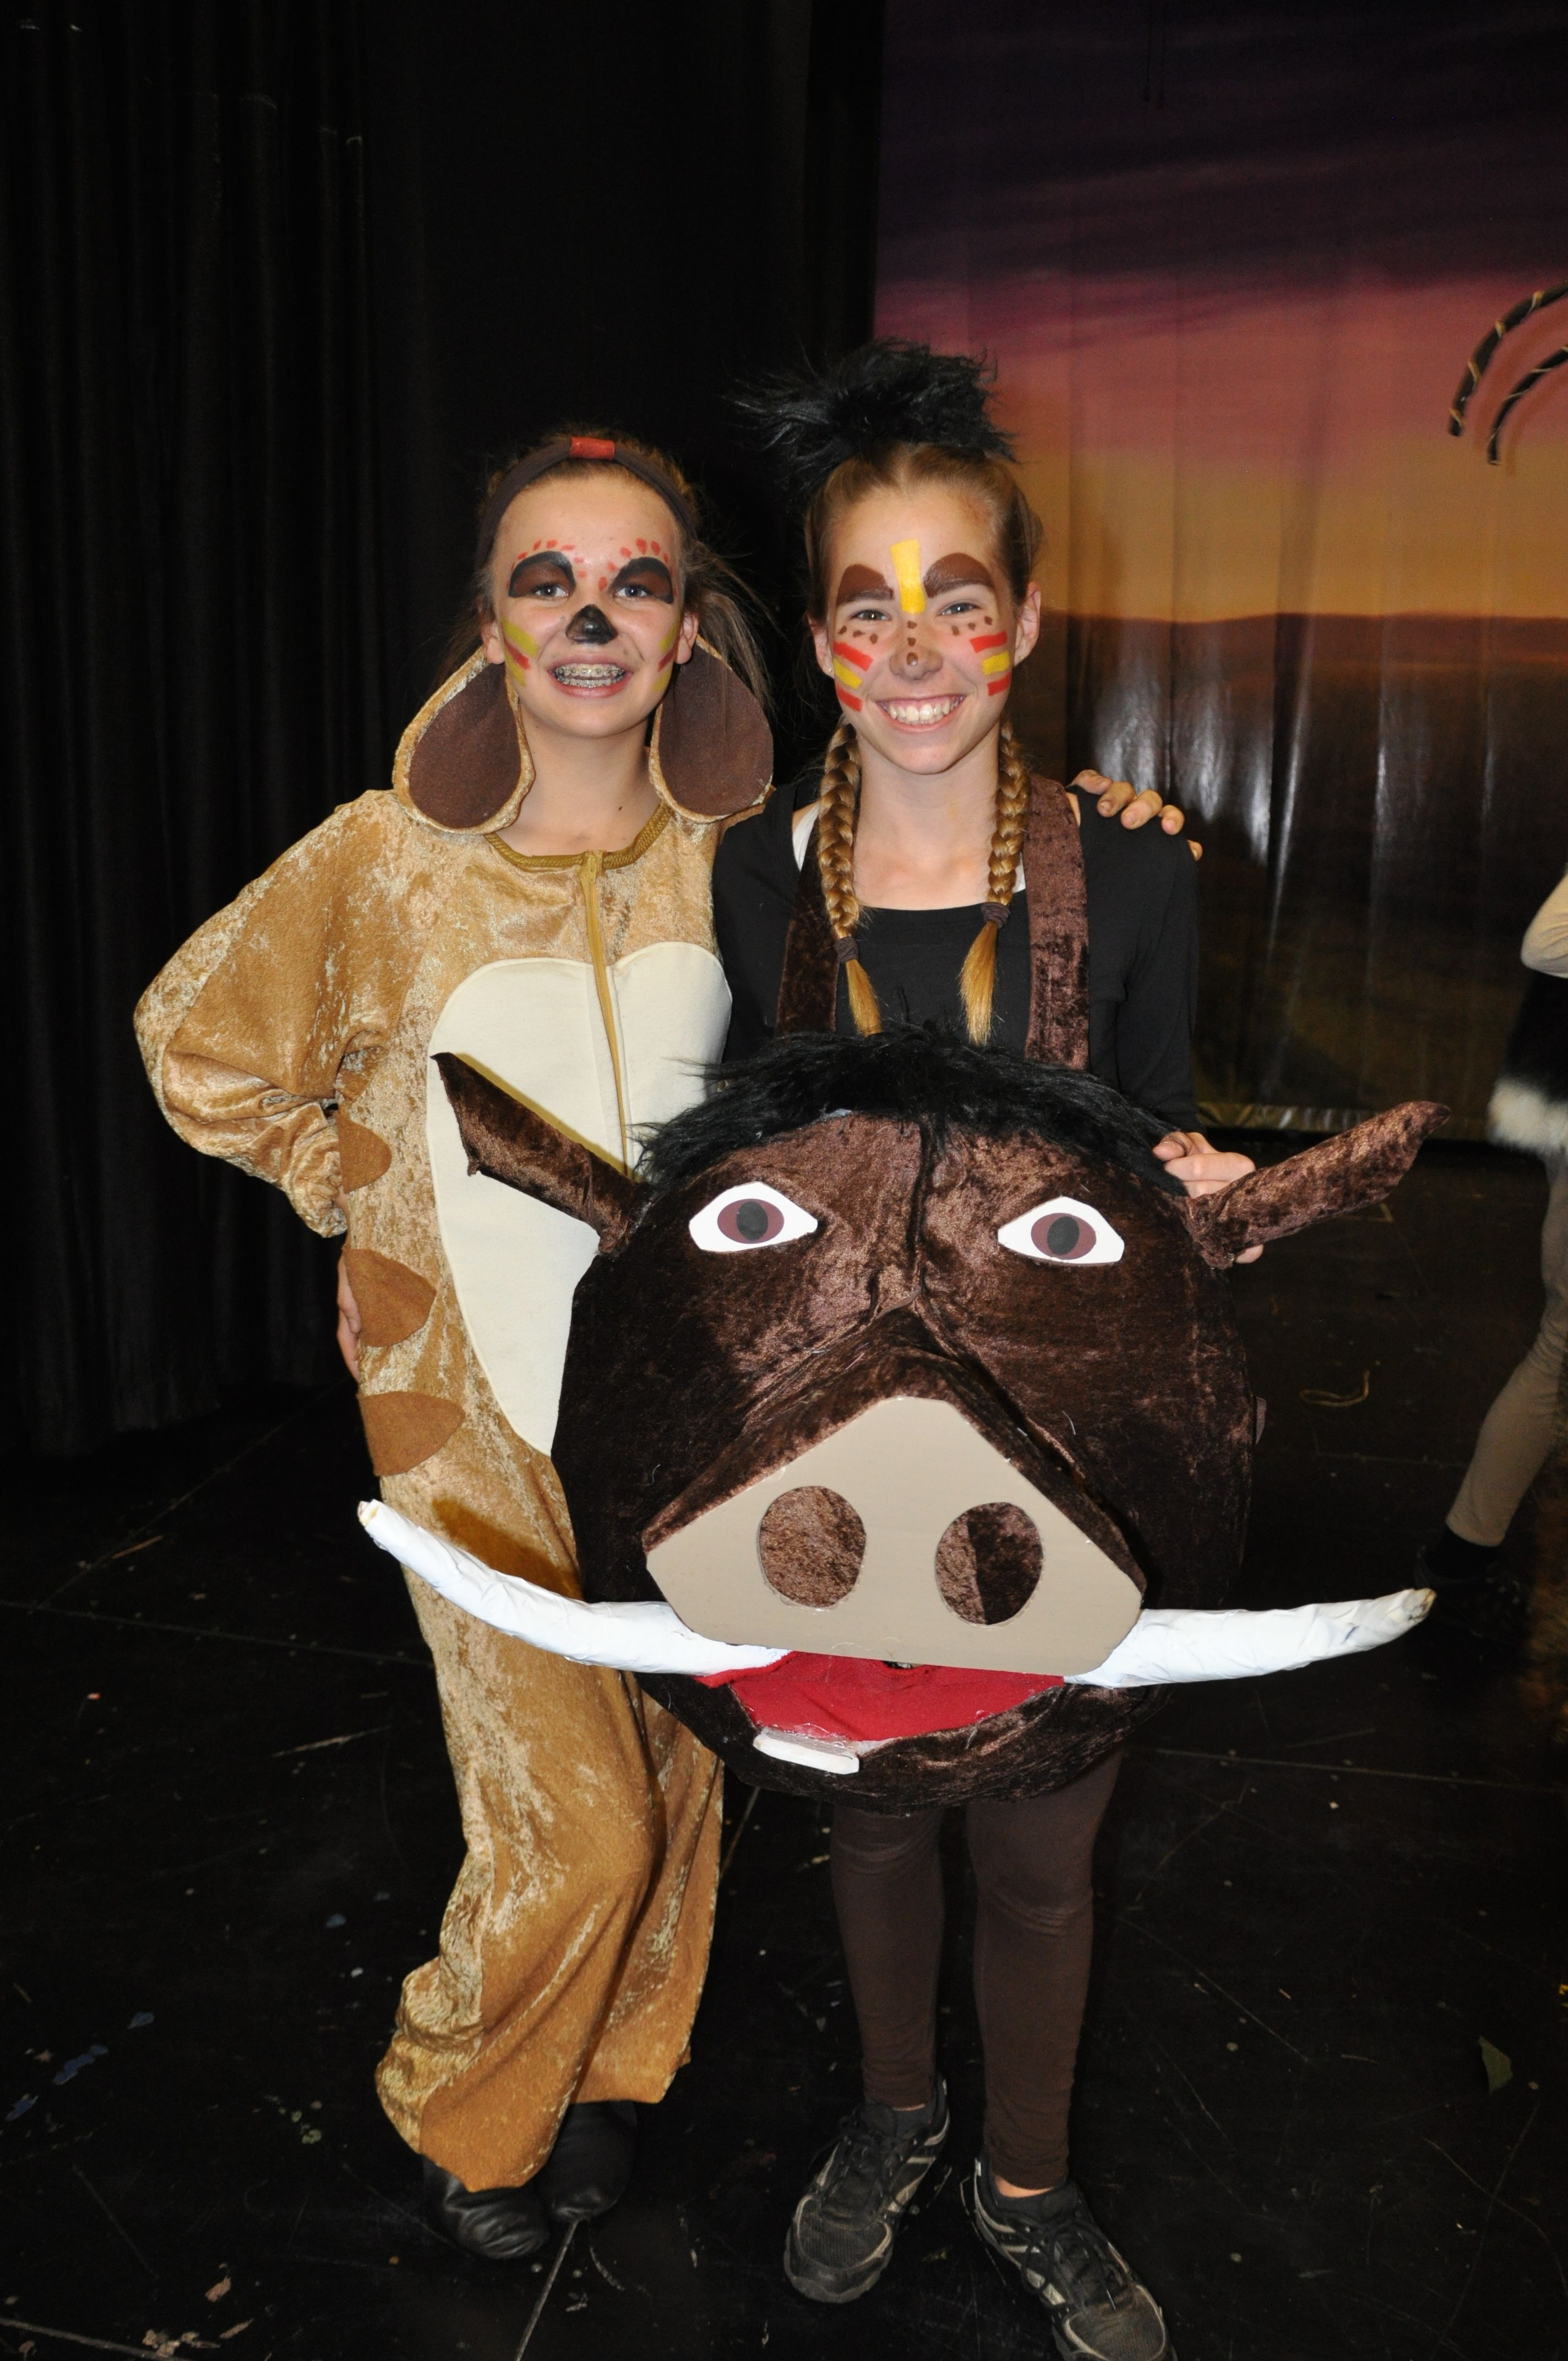 lion king broadway face paint - Google Search | School Production ...